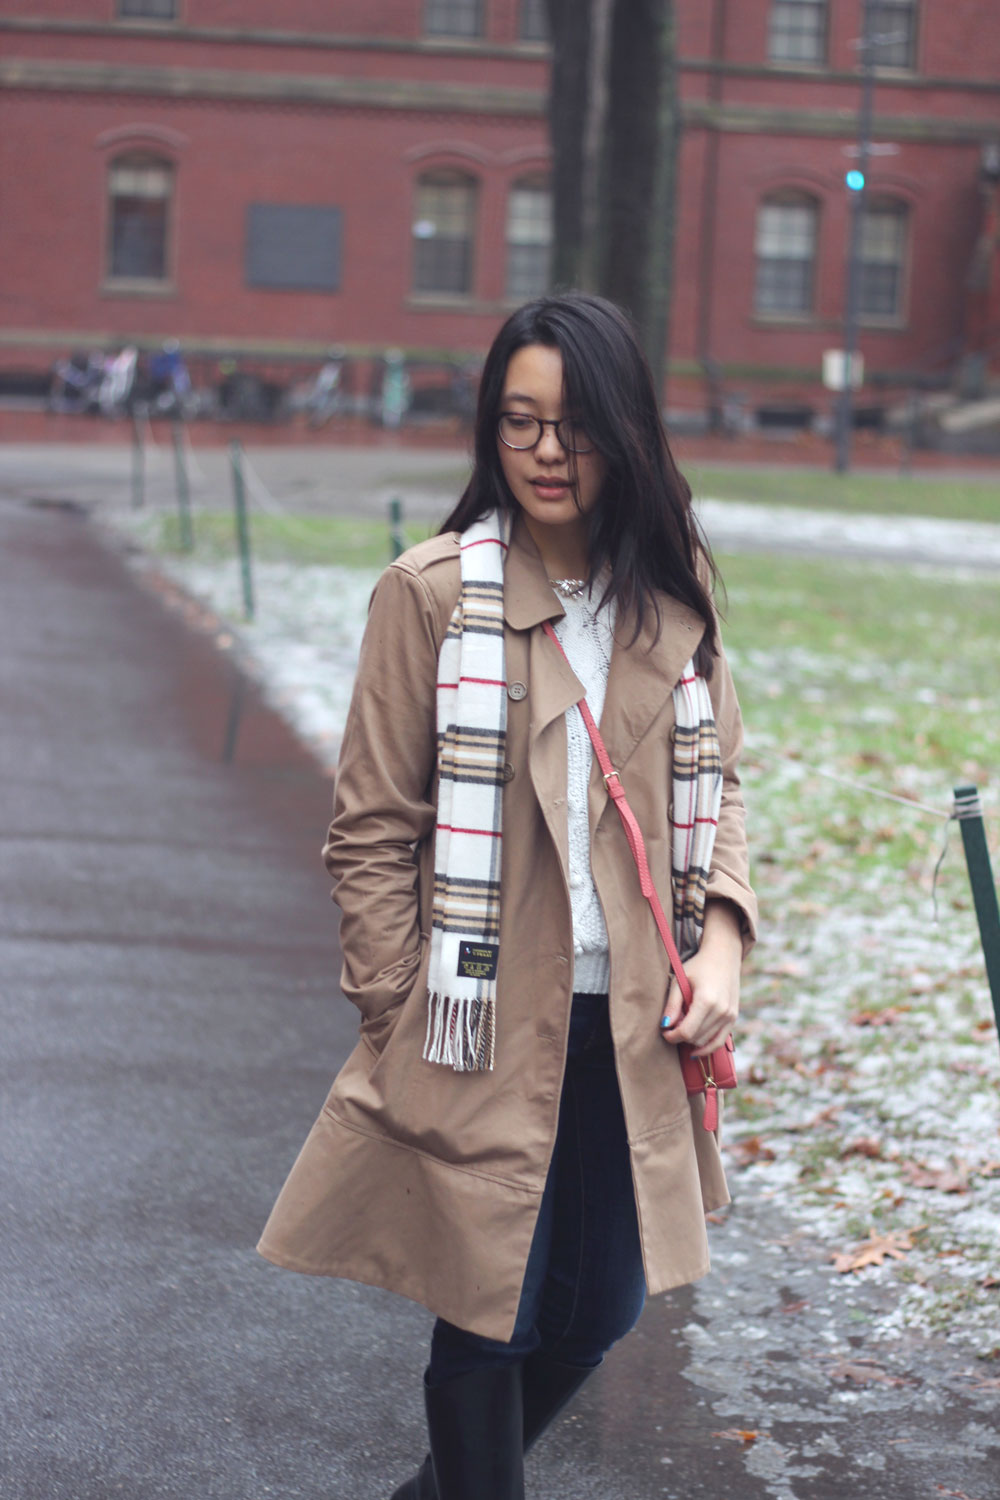 Classic combinations - Plaid scarf and trench coat with crossbody bag